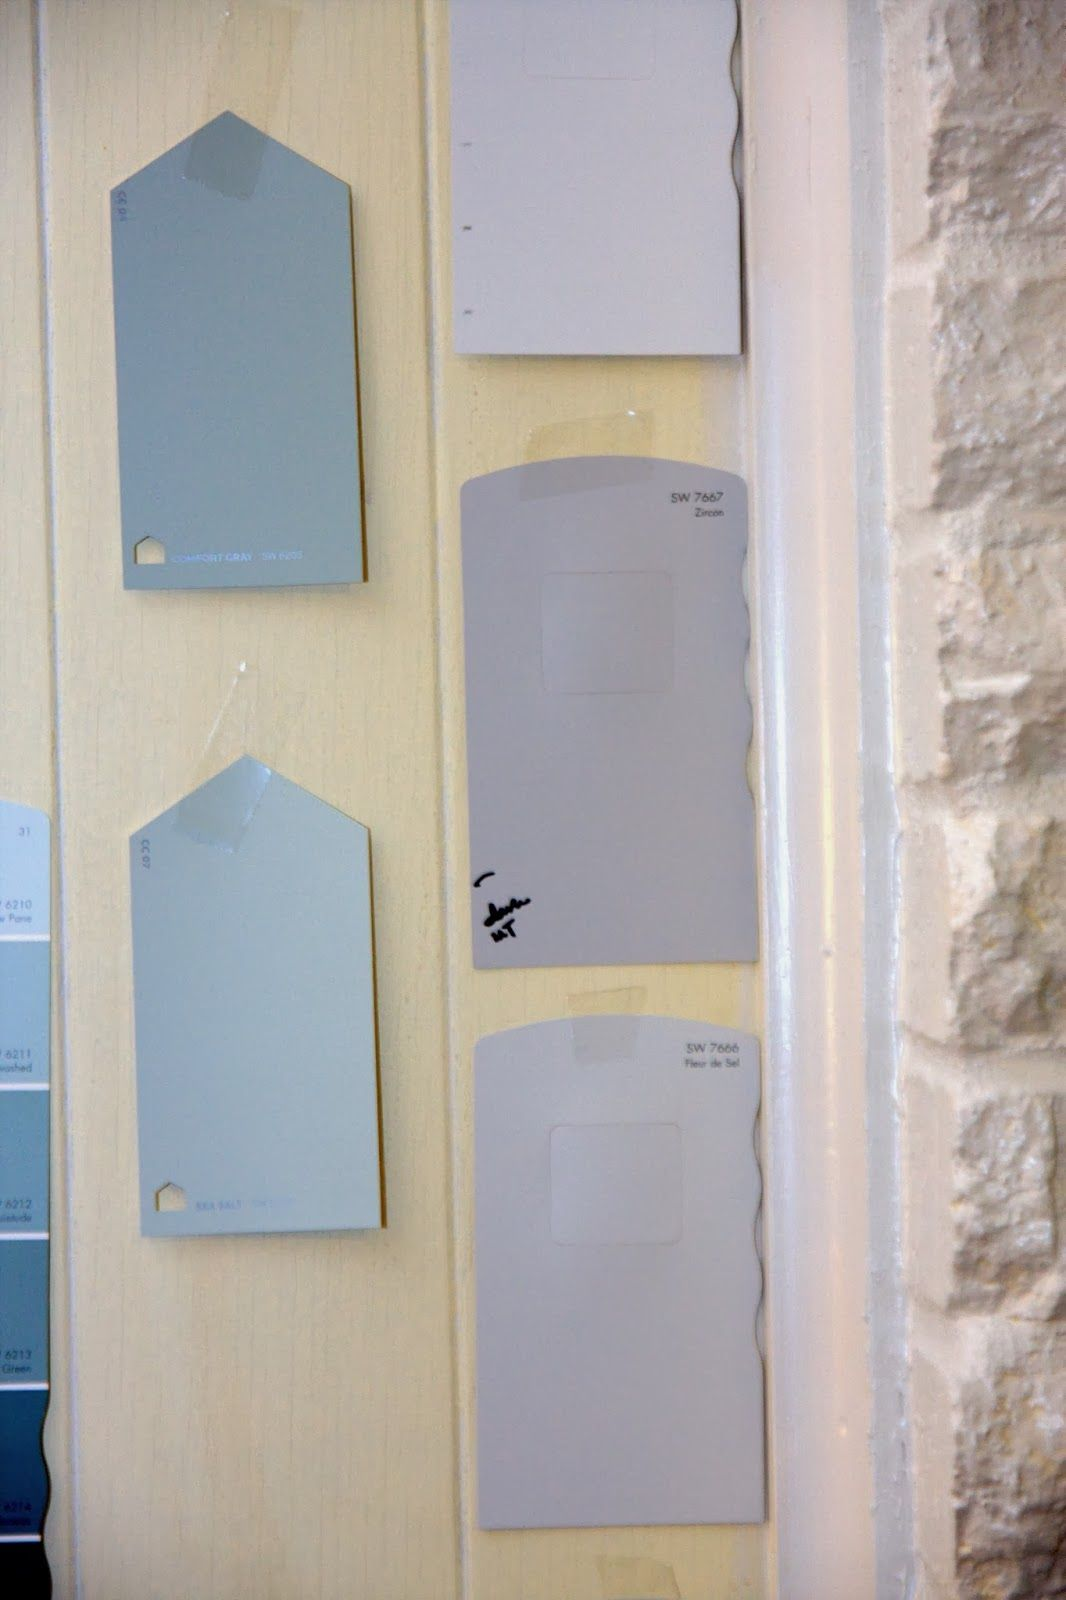 Choosing gray wall paint colors Sherwin Williams Zircon, Knitting Needles, Big Chill, Sea Salt, Comfort Gray